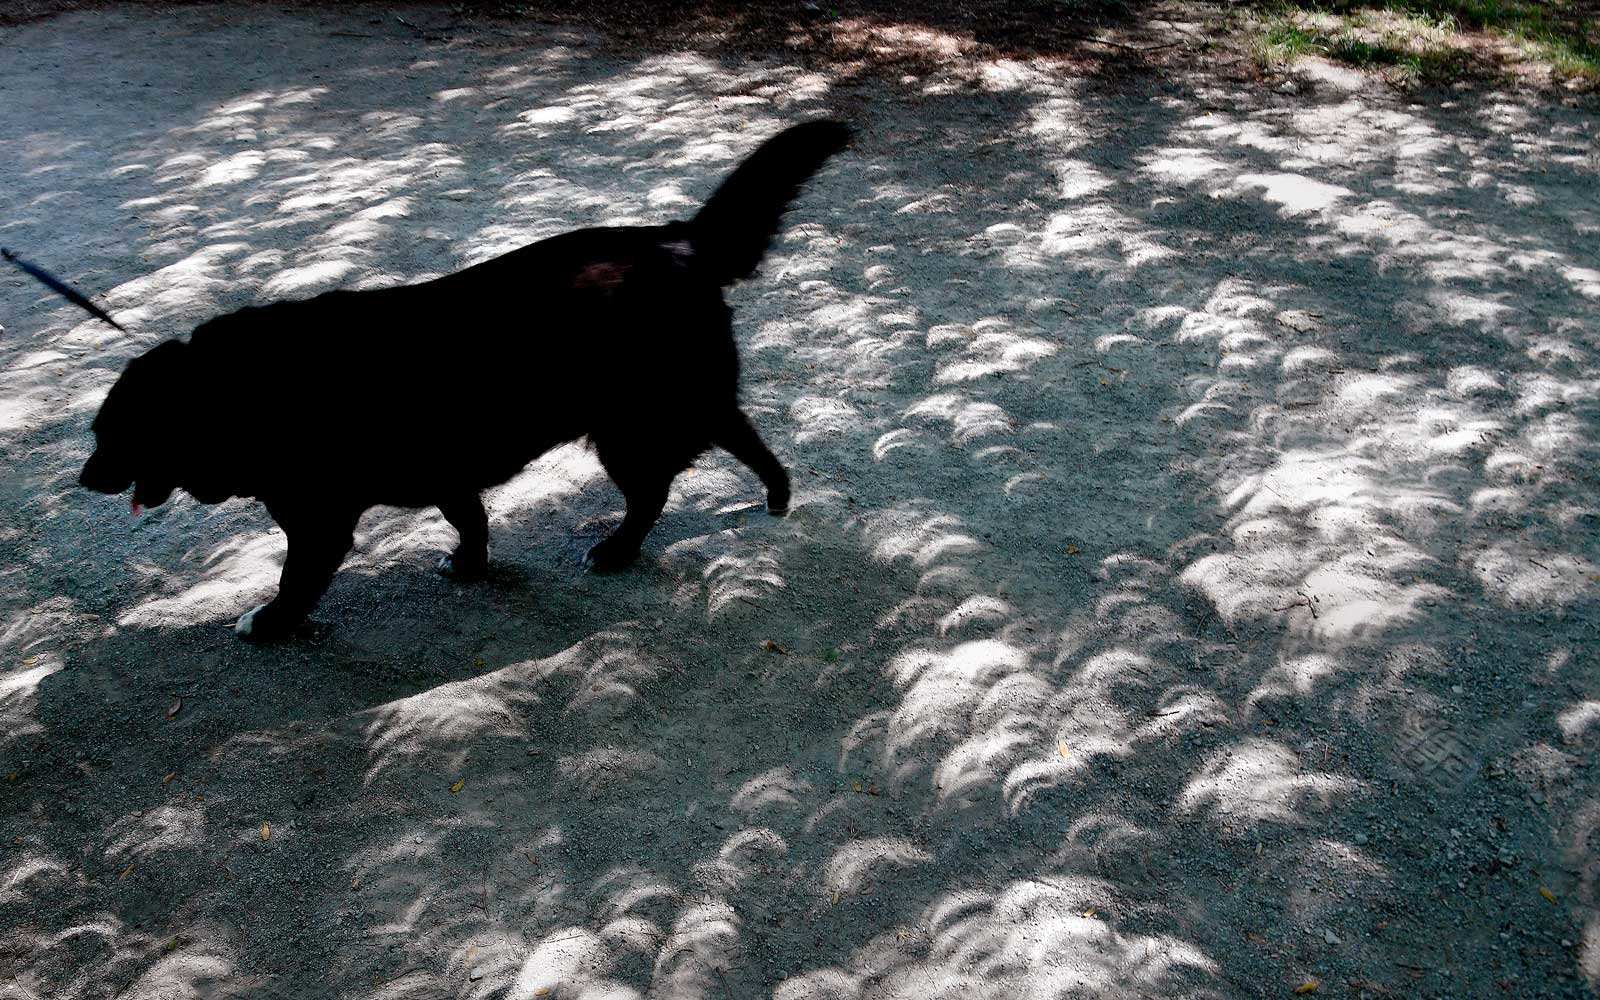 Crescents that are the shadows of the eclipse could be seen on the ground through the shade of trees